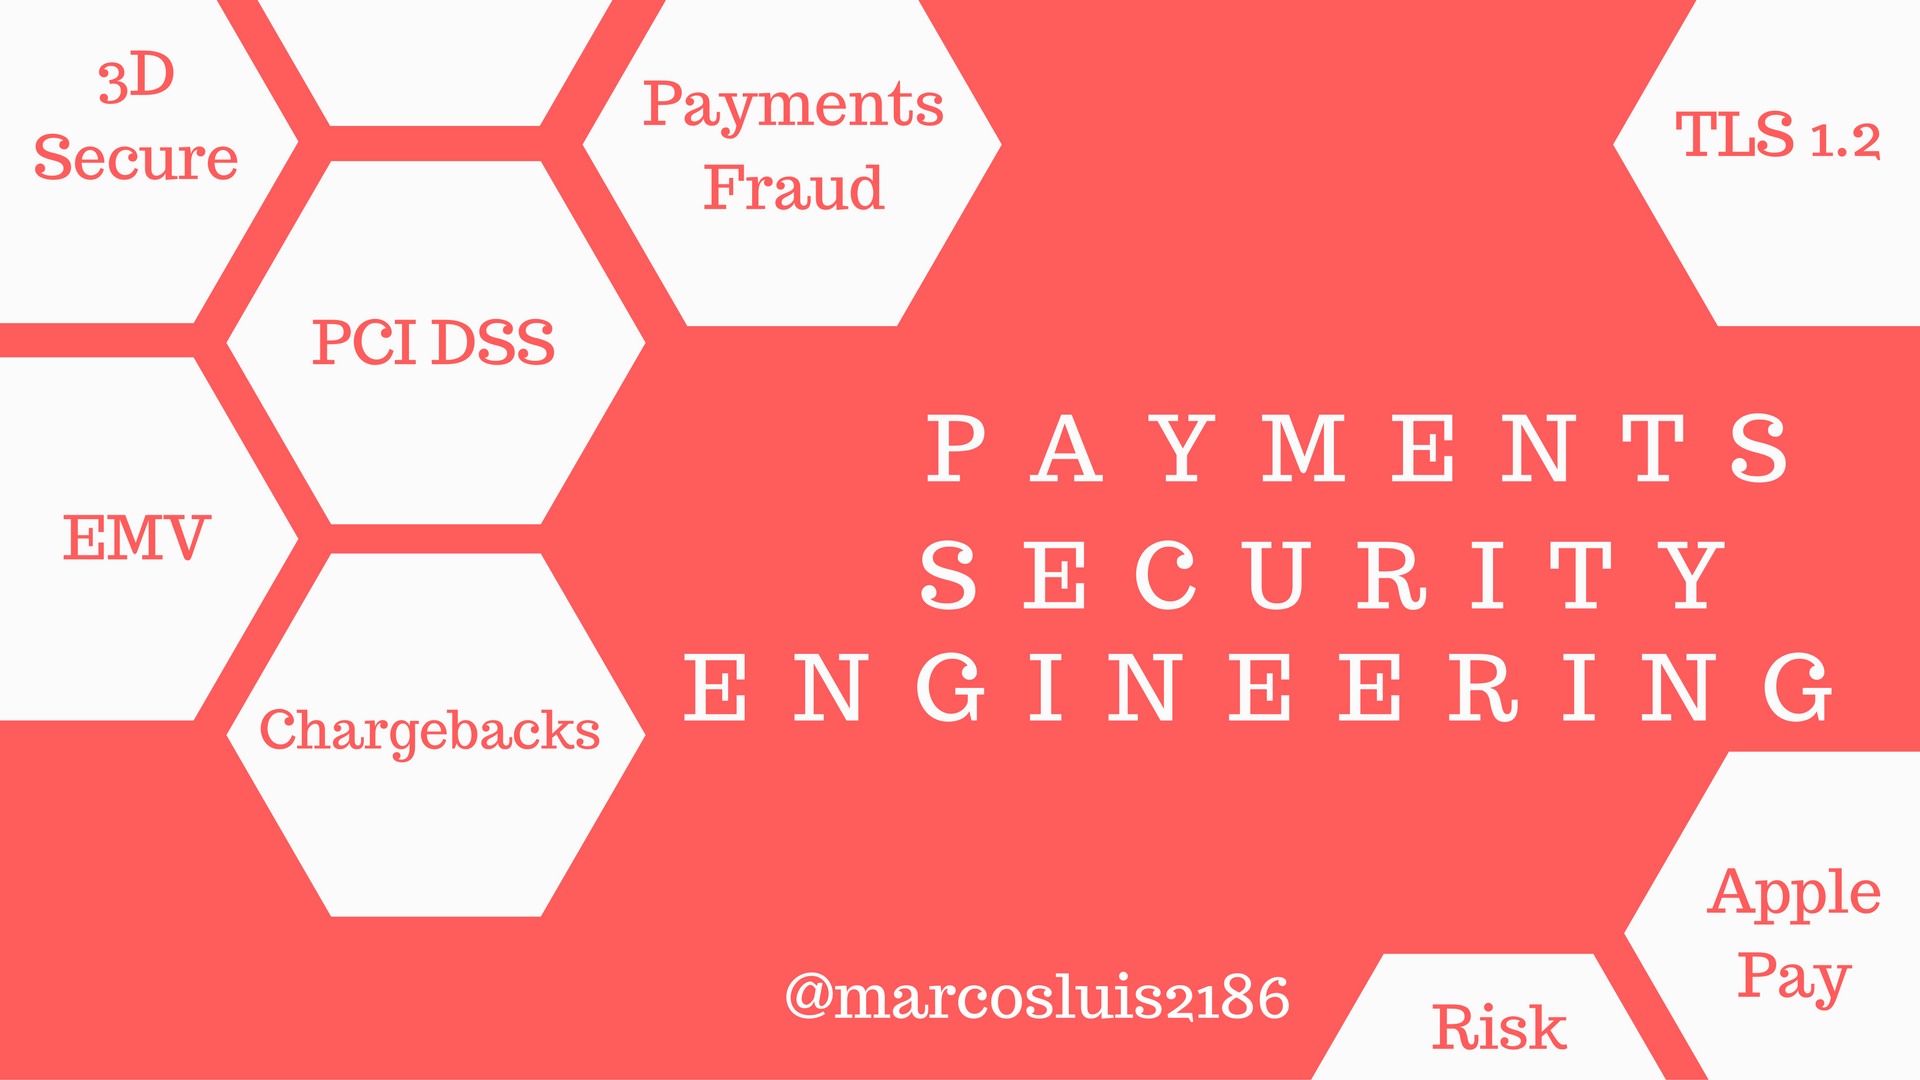 Payments Security Engineering: One of the Most Exciting